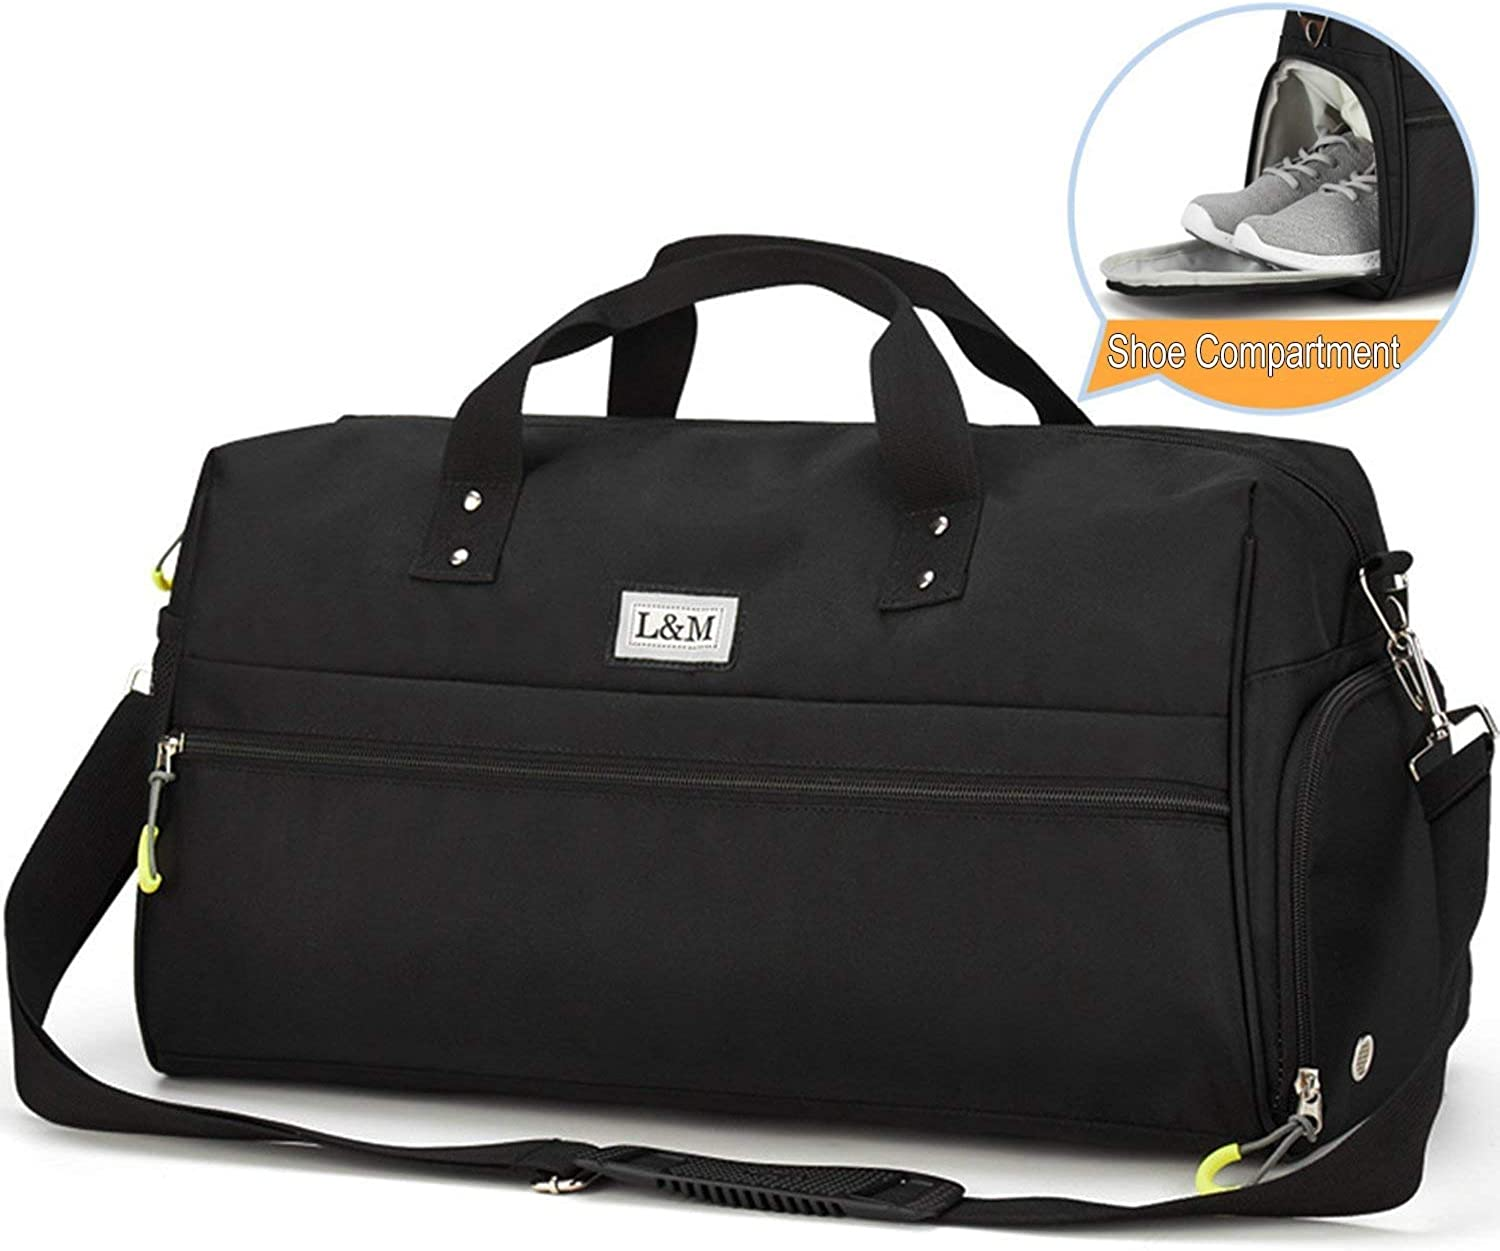 Casual Daypacks, Gym Duffel Bag Sports Travel Tote Bag Overnight for Men and Women with shoes Compartment, Wet Pocket, Waterproof (color   2)